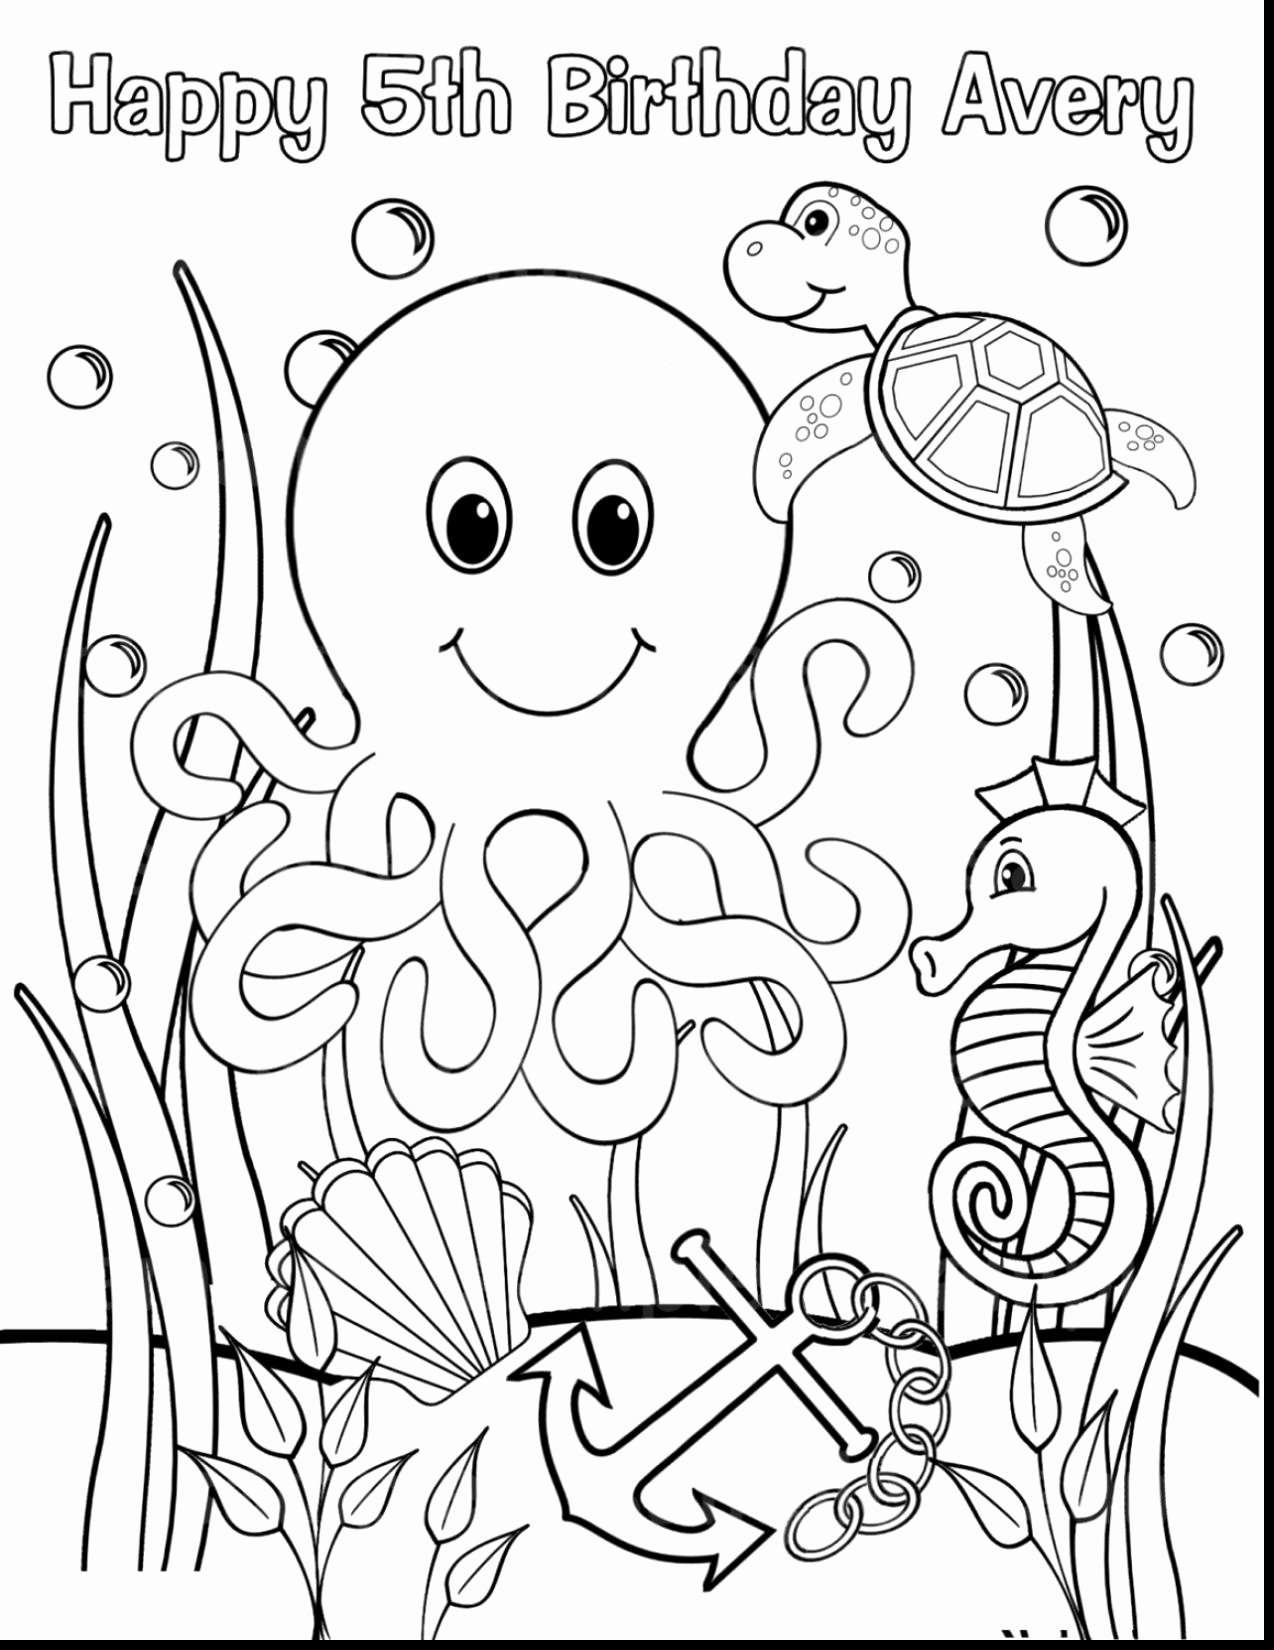 Sea Animals Worksheets for Preschoolers Fresh Sea Animals Coloring to Print at Getdrawings Free for Kids